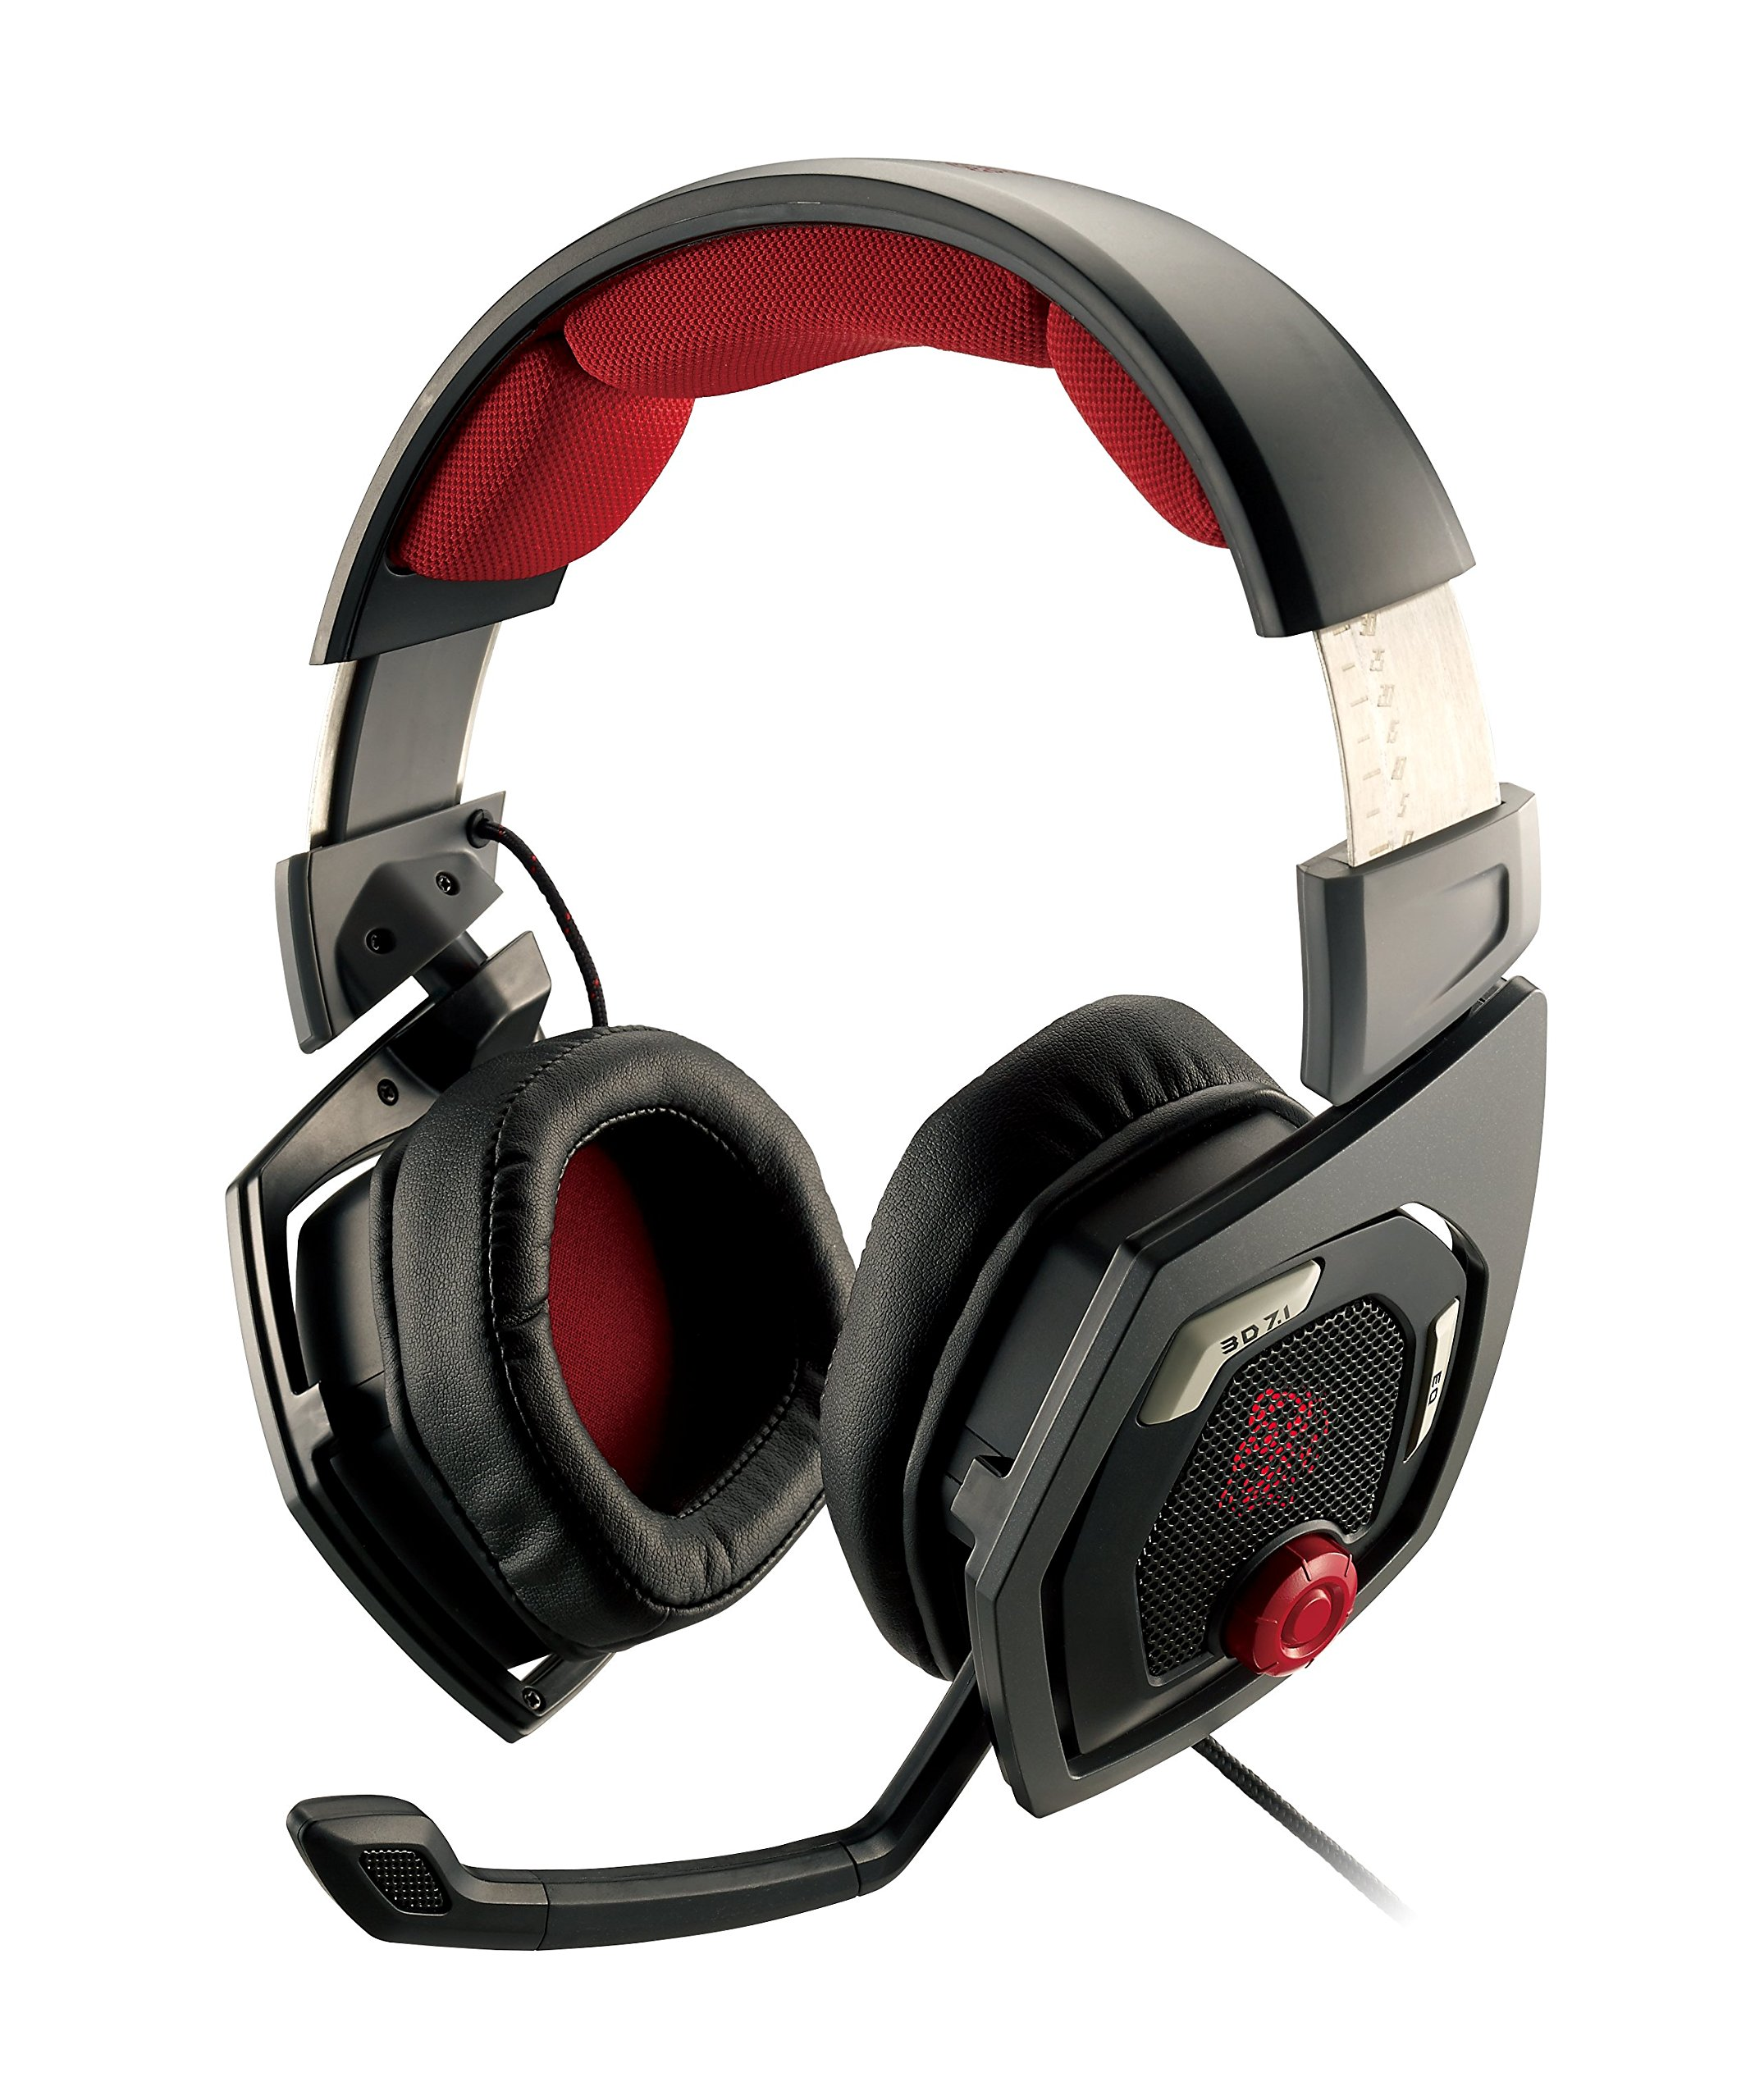 Tt eSPORTS Shock 3D 7.1 Surround Sound Gaming Headset...